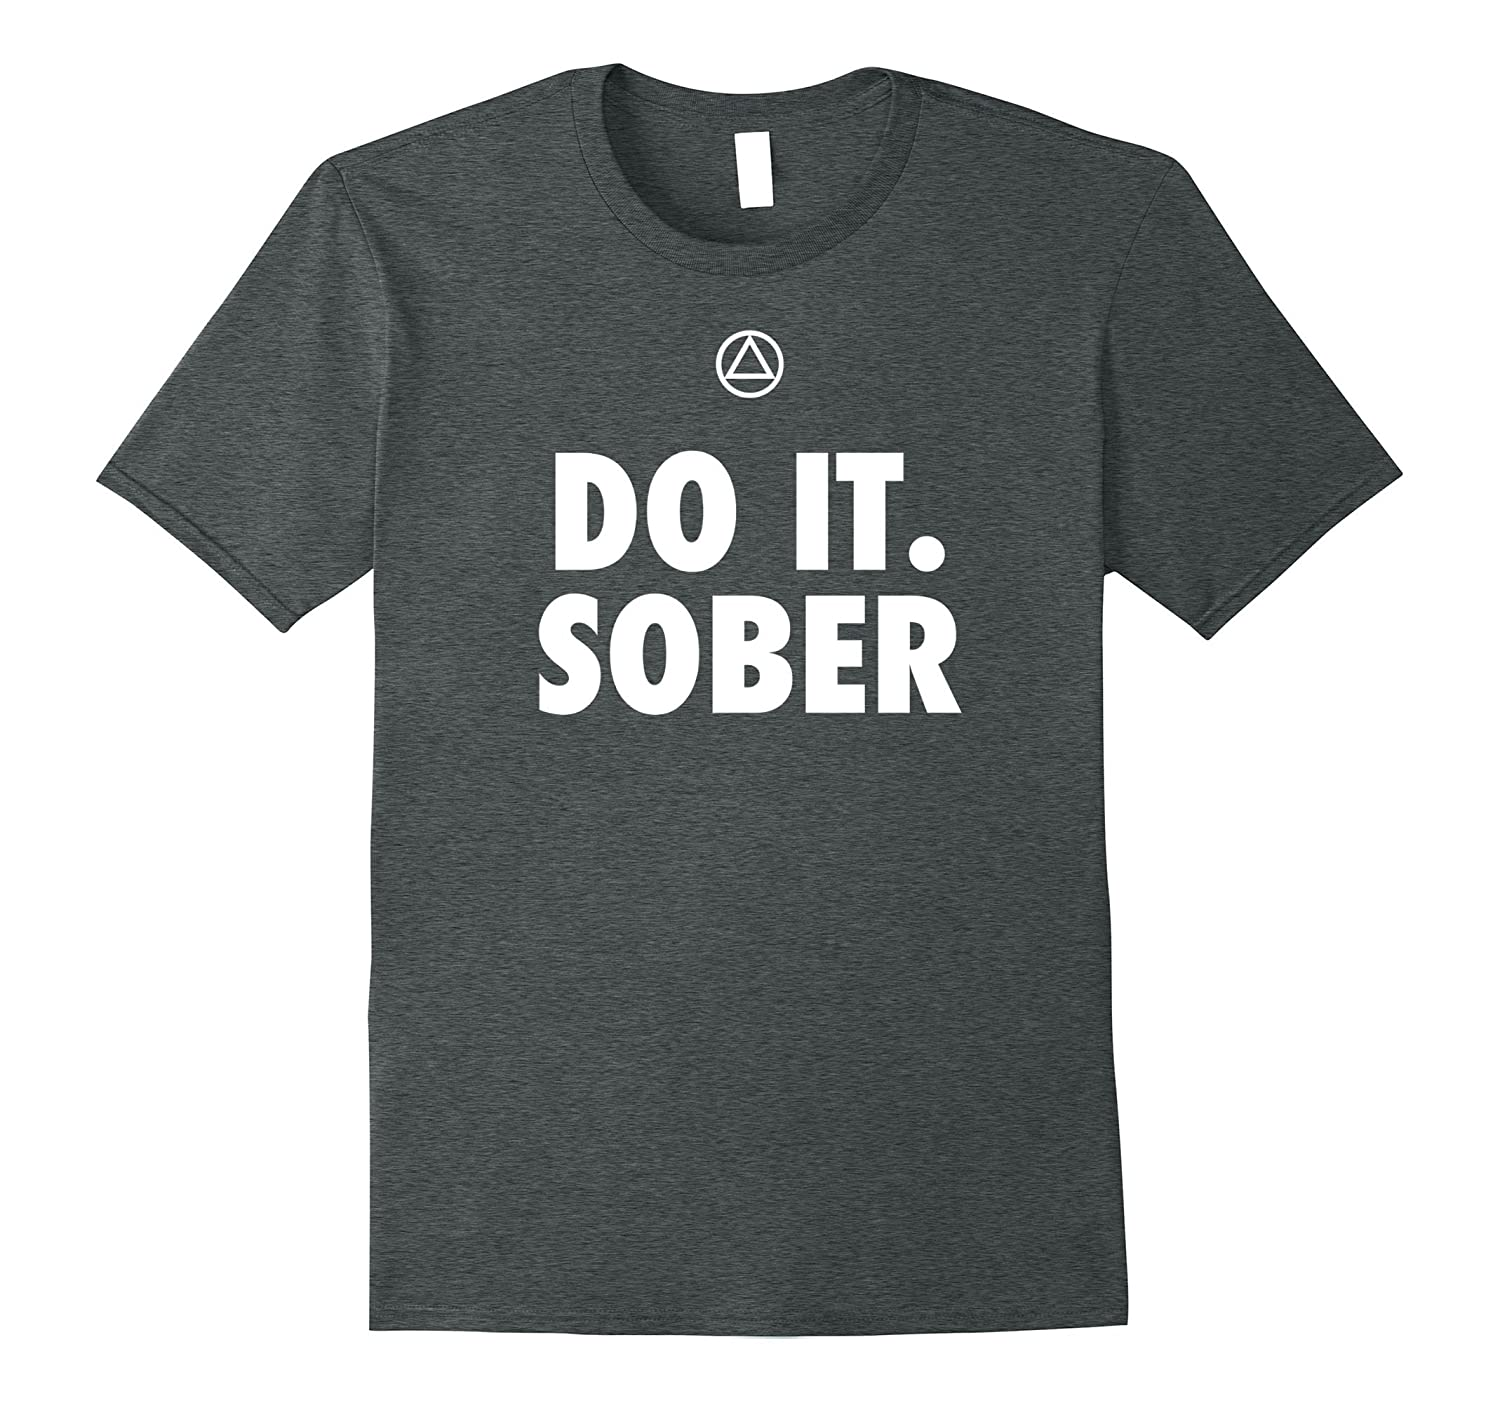 'Do It. Sober' - Funny AA Recovery T-Shirt-ah my shirt one gift